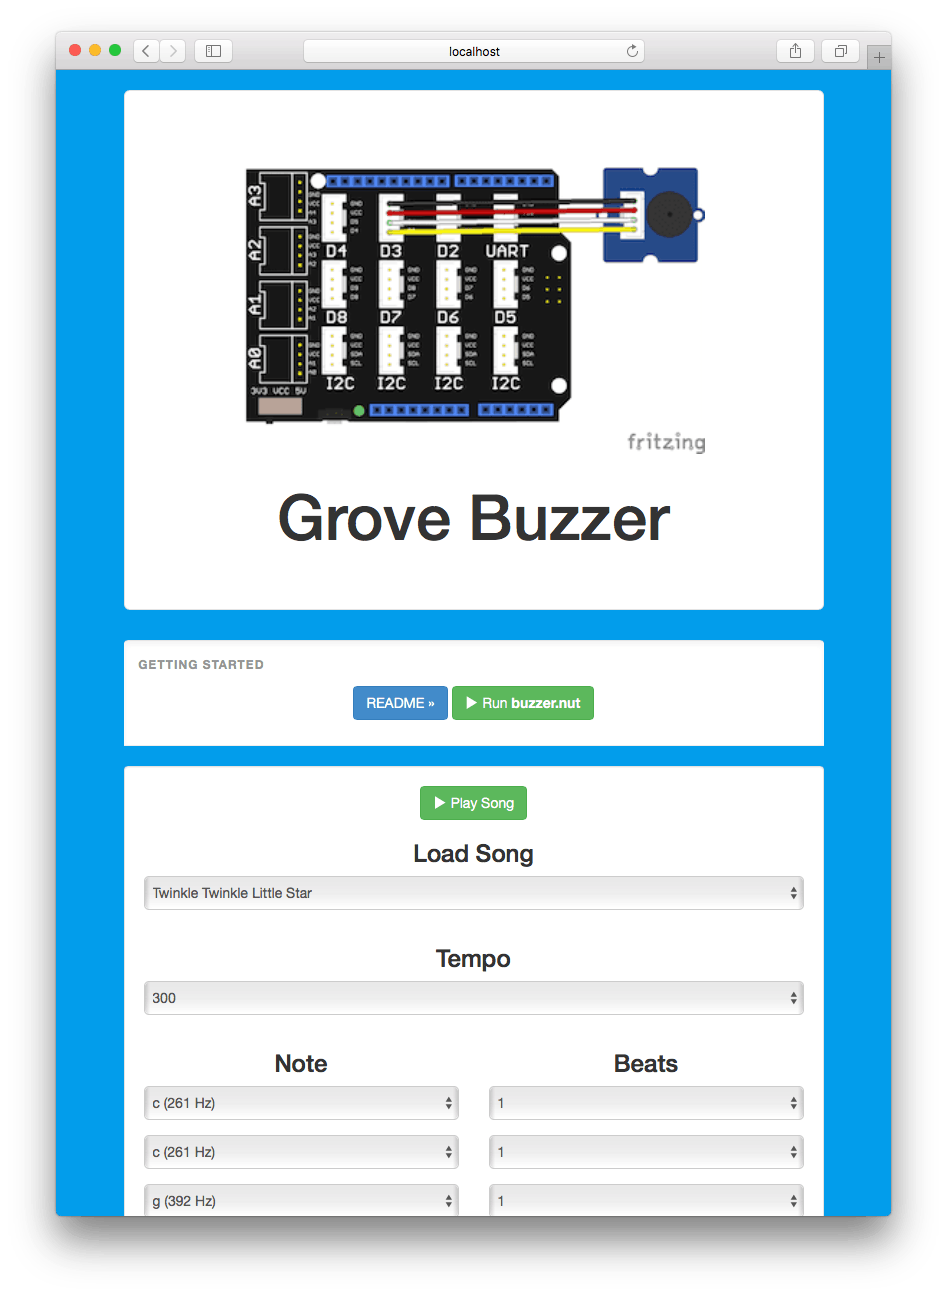 Turns the Esquilo into a web-controlled music player using the Grove buzzer module